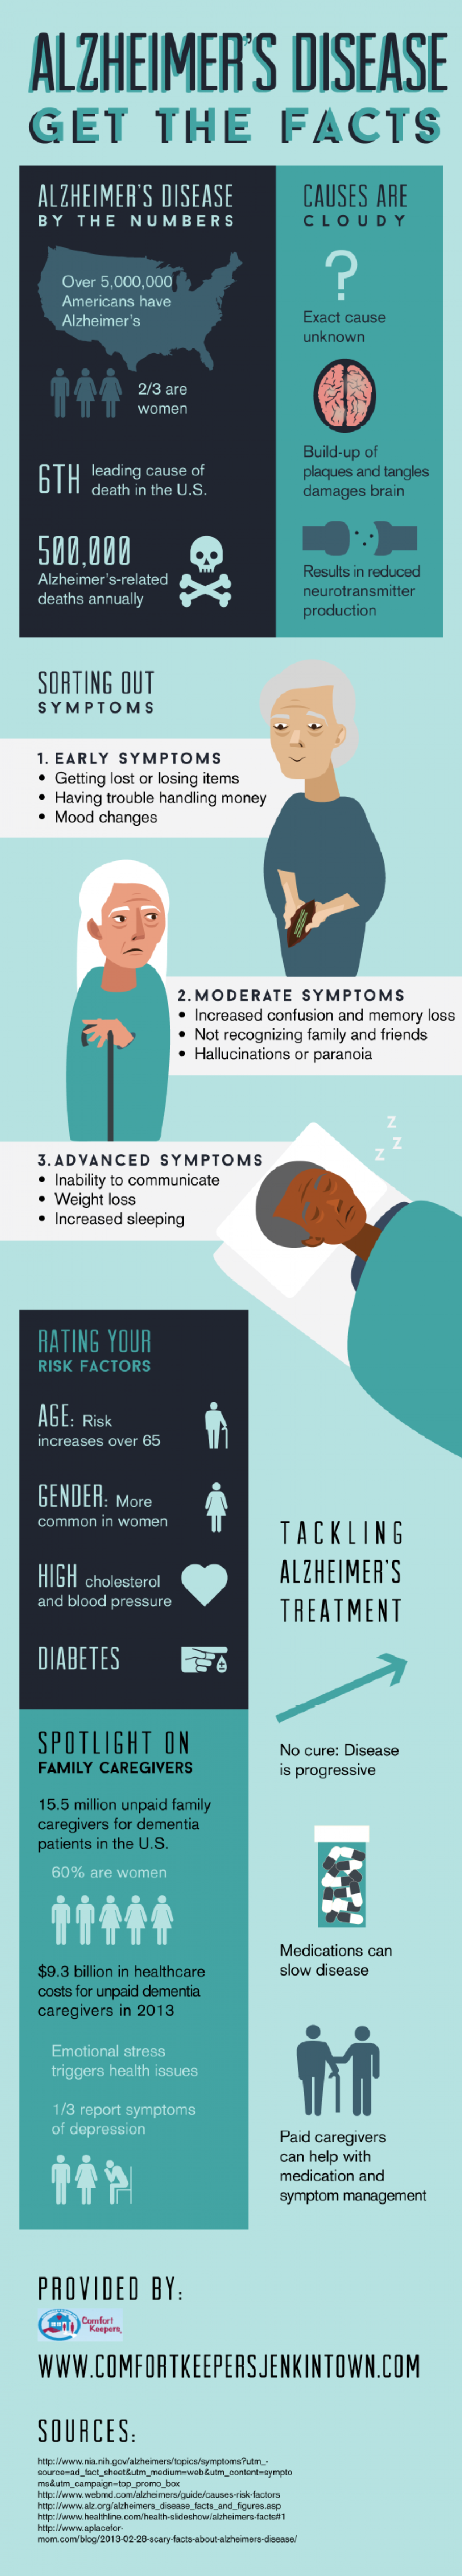 Alzheimer's Disease: Get the Facts Infographic